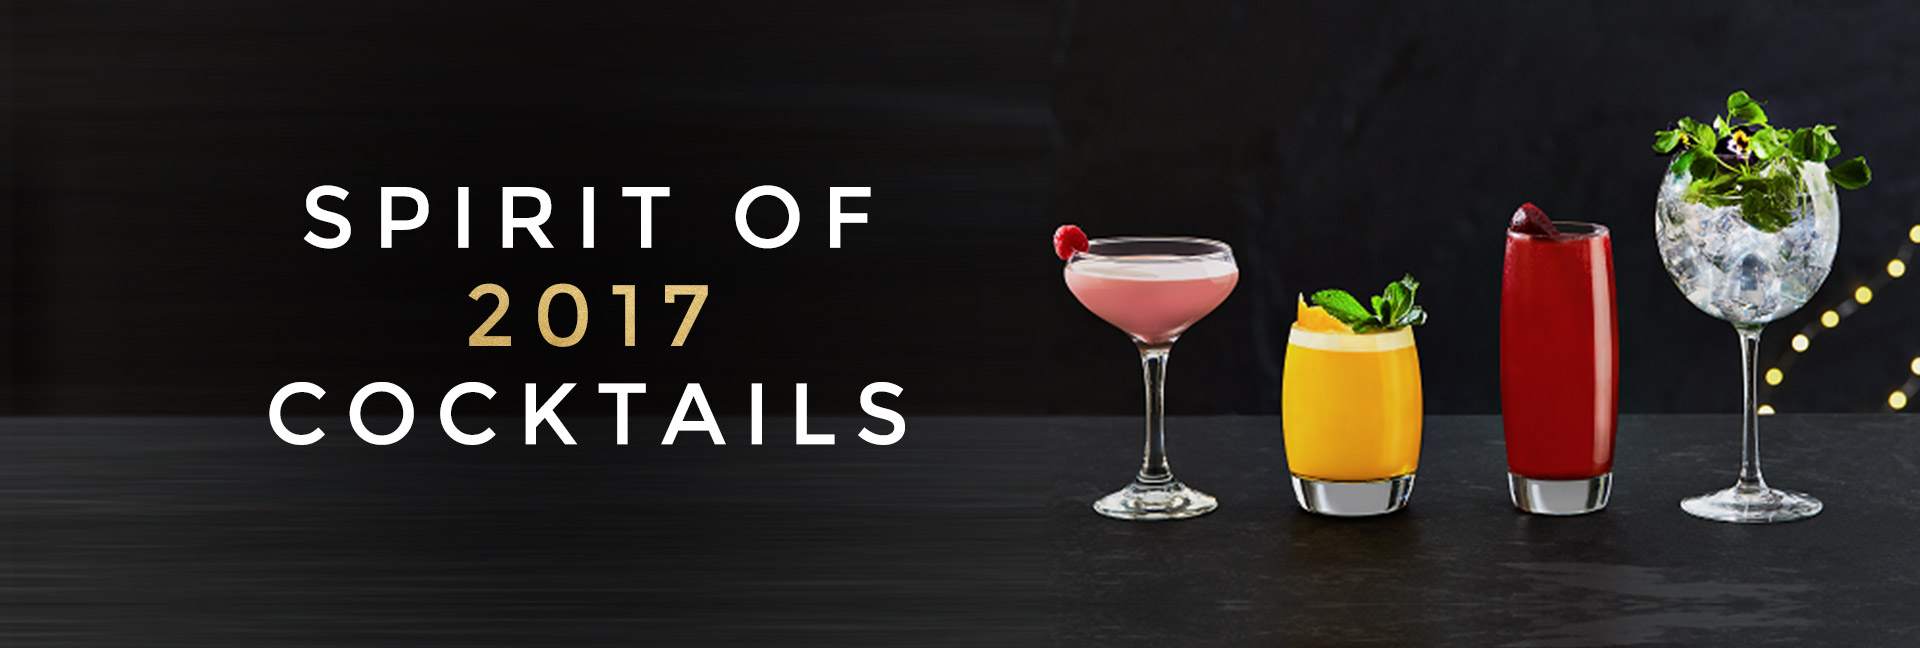 Spirit of 2017 cocktails at All Bar One Guildford